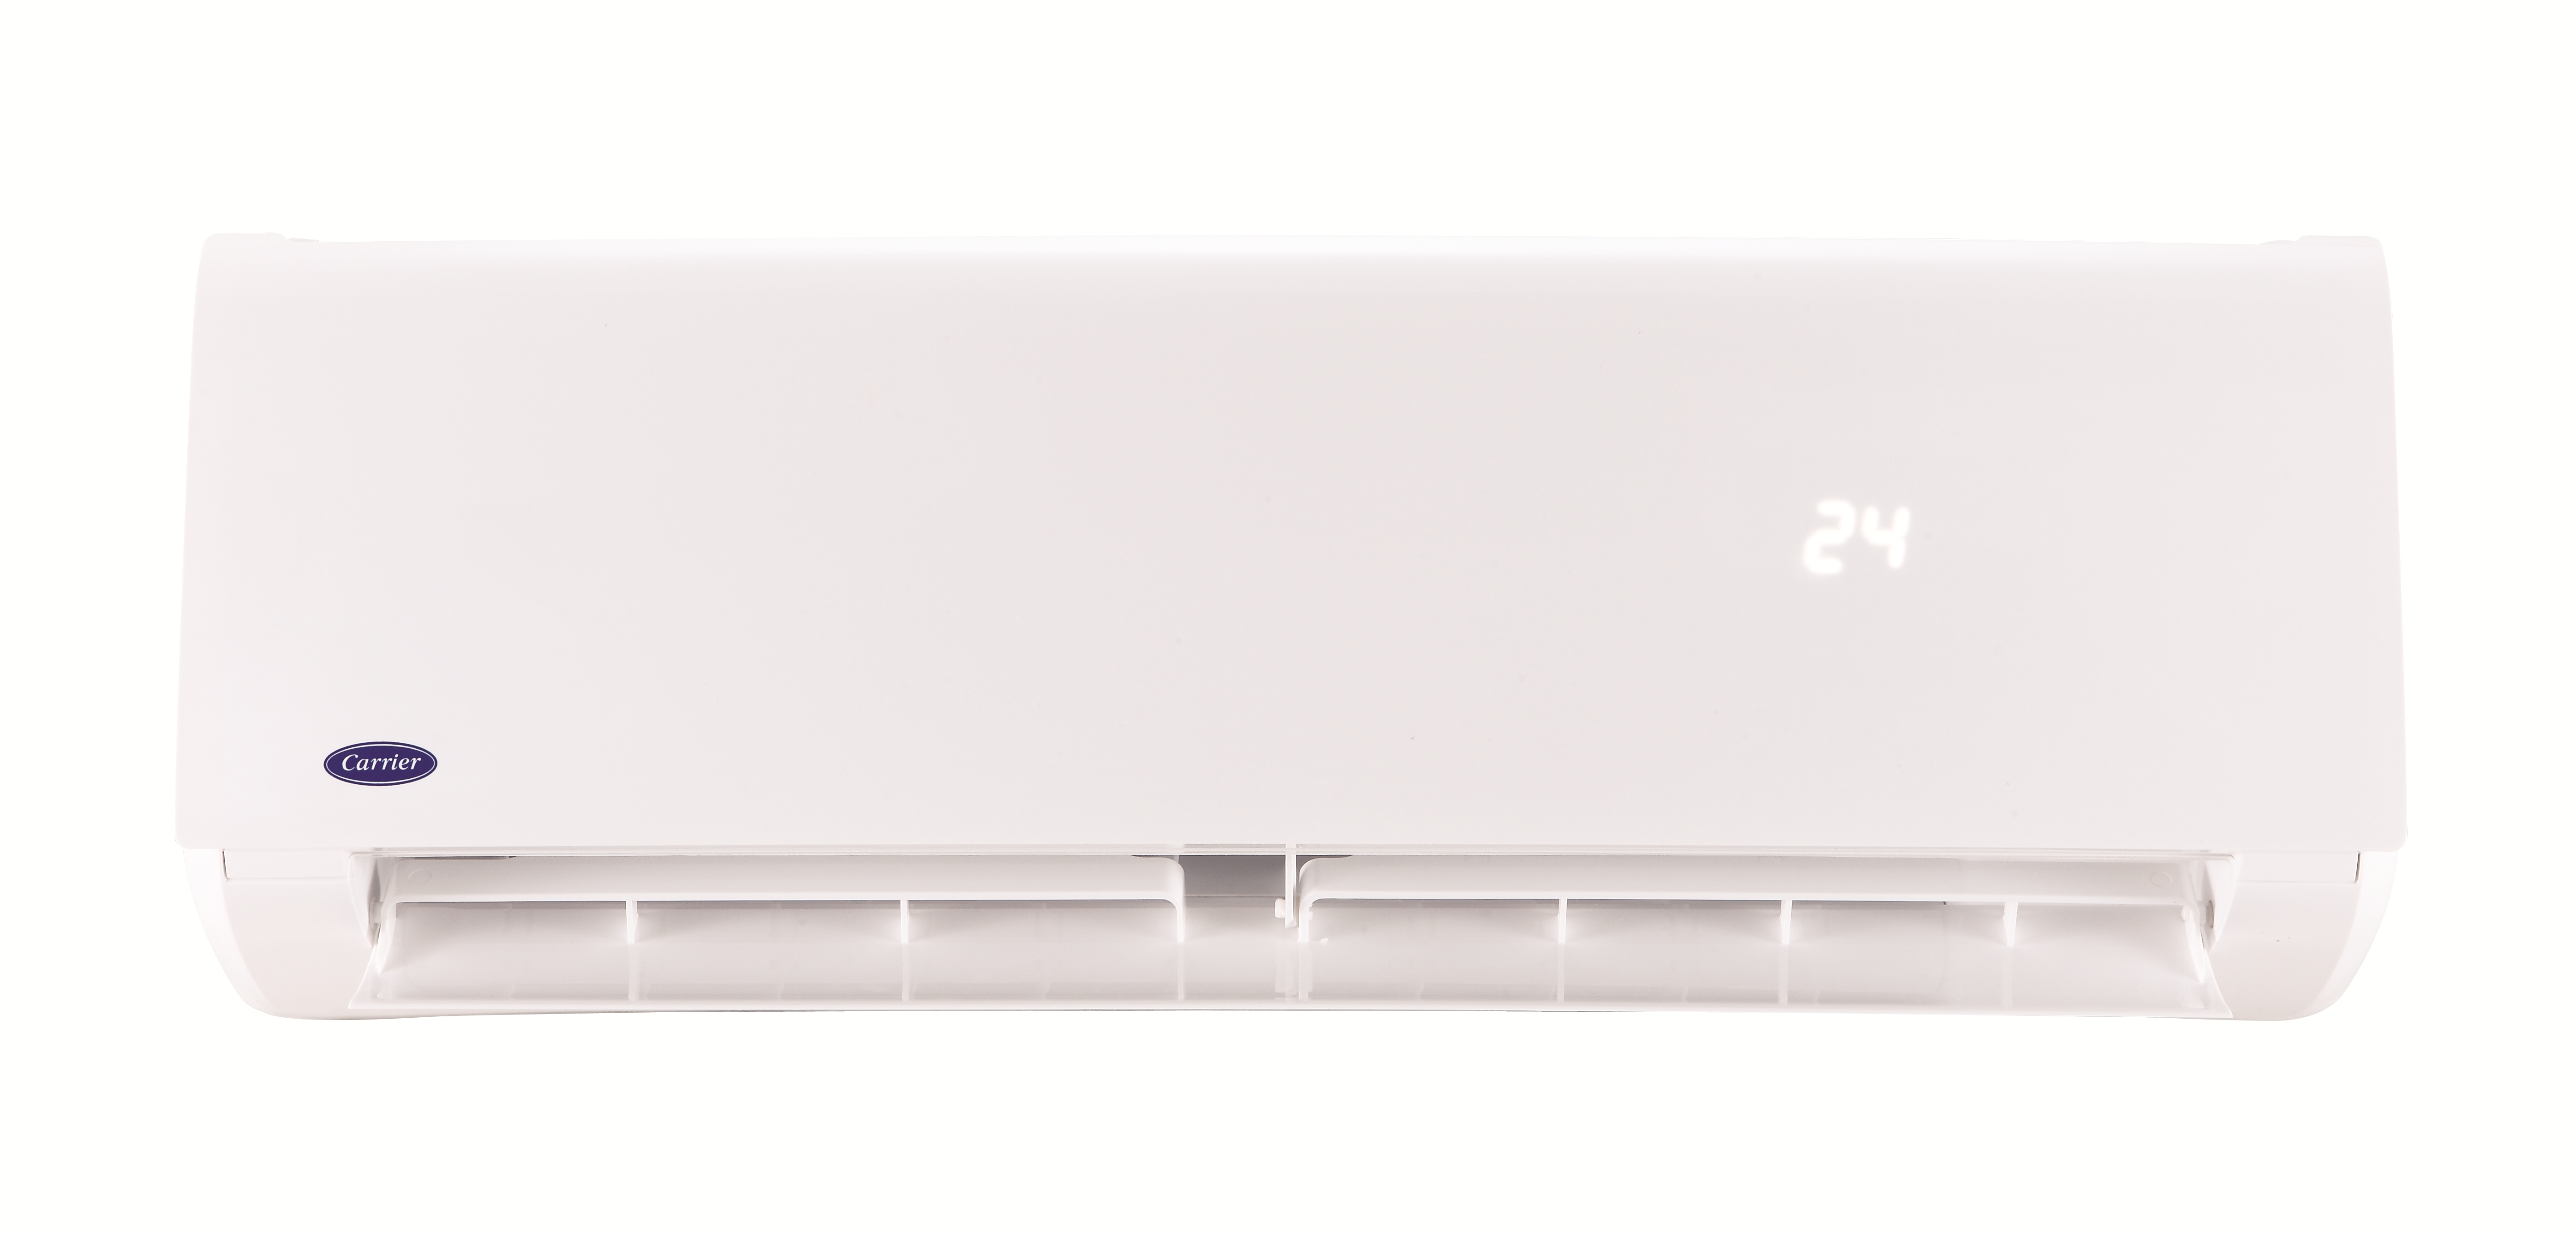 Carrier_Residential_AC_WiFi_Series